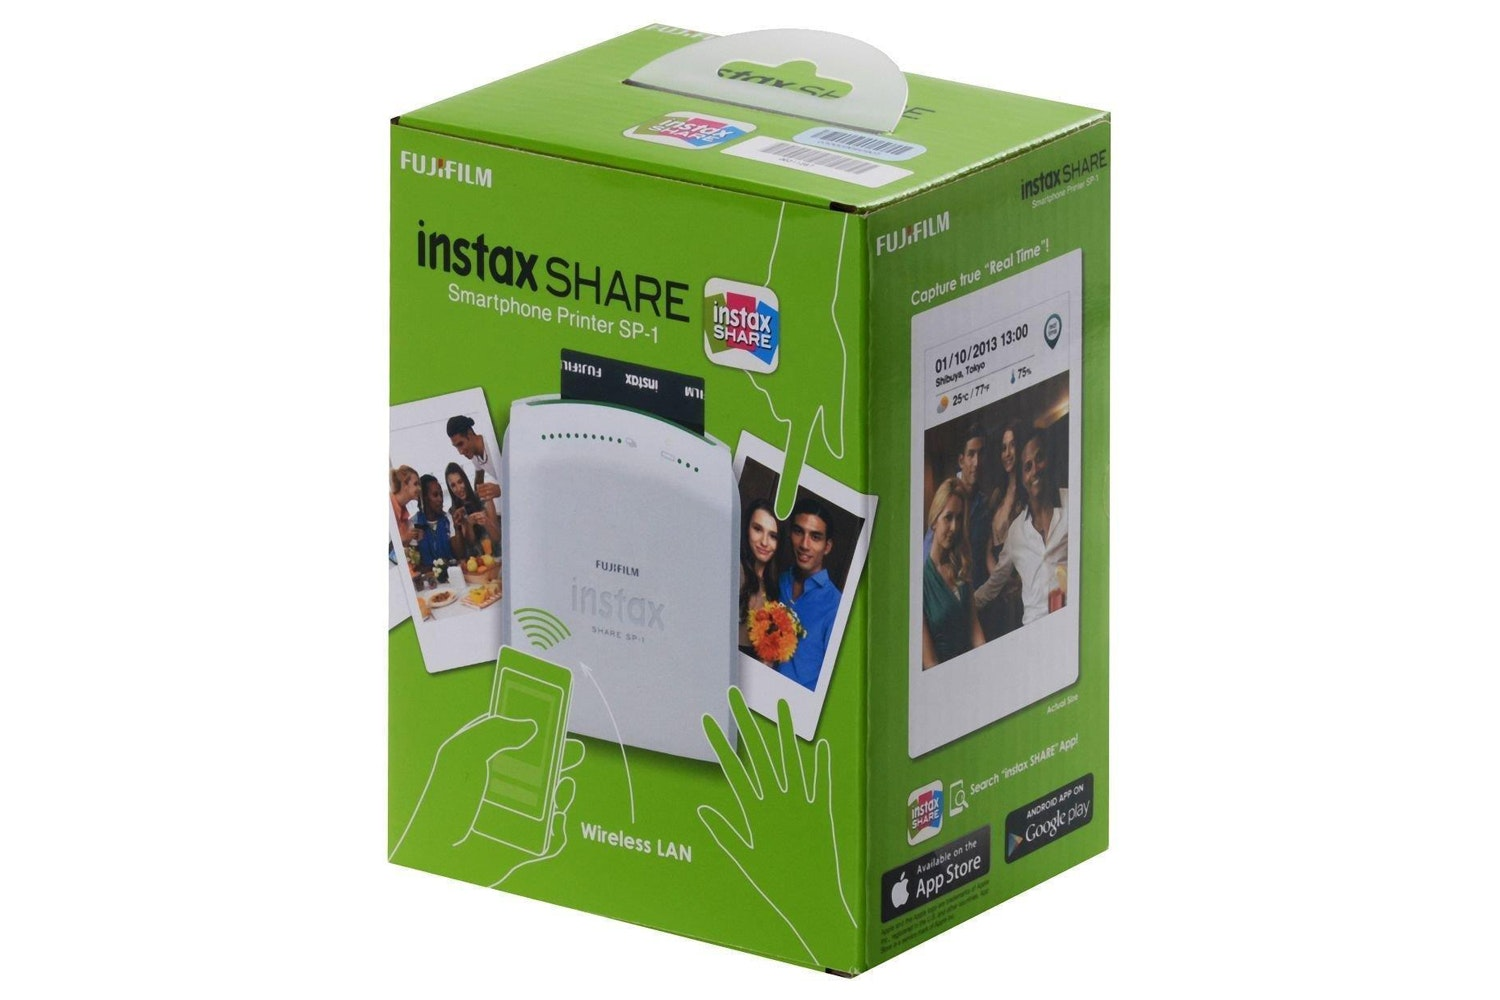 Fujifilm Instax Share SP-1 Smartphone Printer | 20 Shots